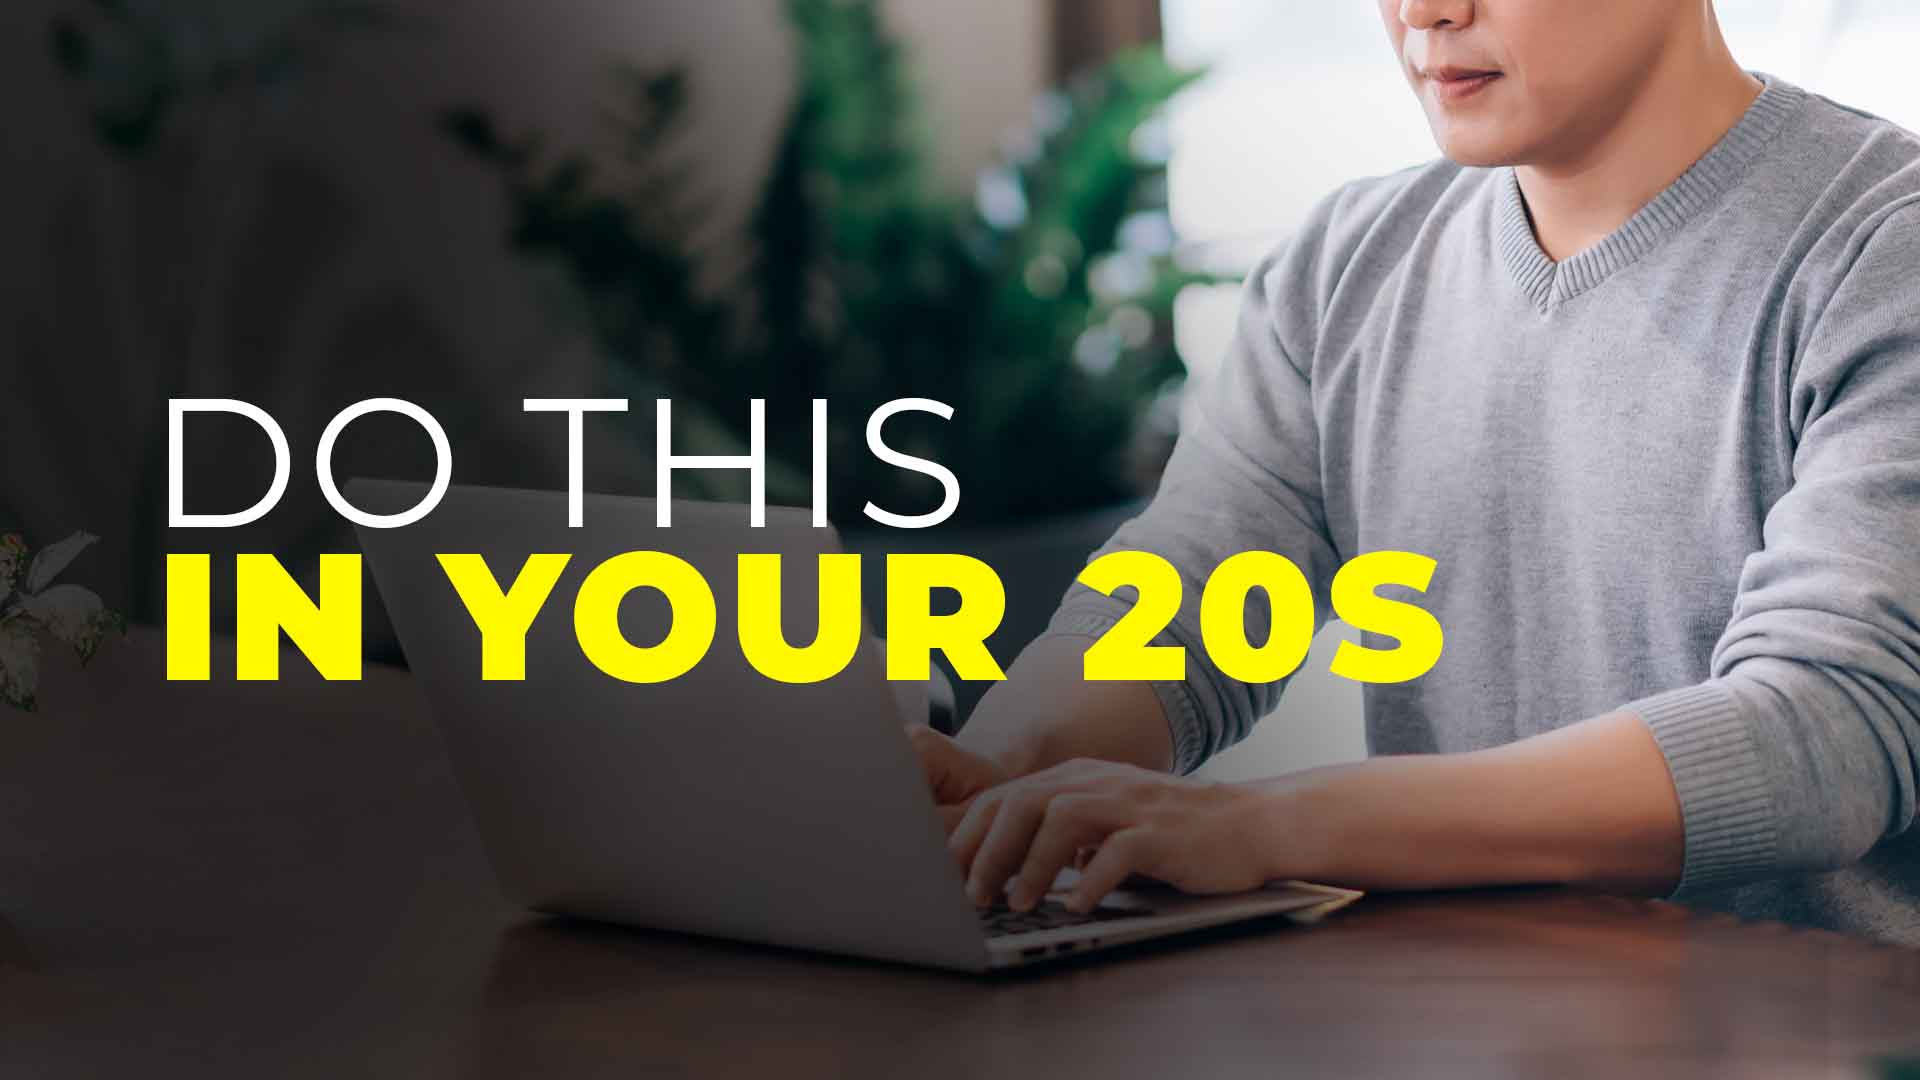 Things you should do in your 20s